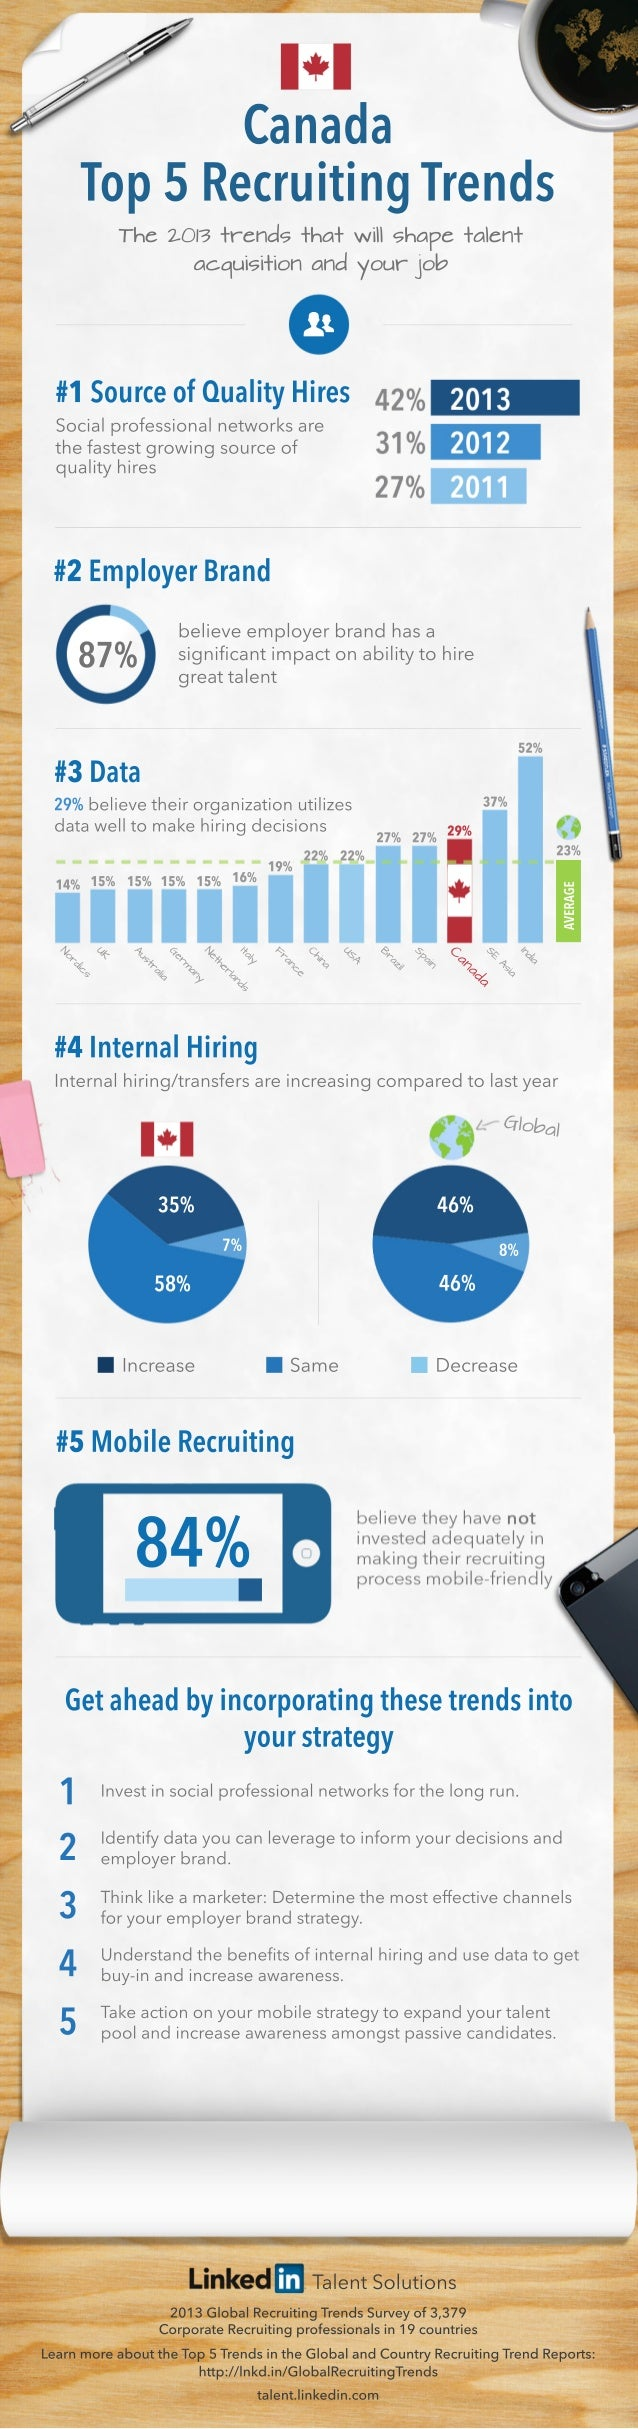 TalentSolutions 2013GlobalRecruitingTrendsSurveyof3,379 CorporateRecruitingprofessionalsin19countries LearnmoreabouttheTop...